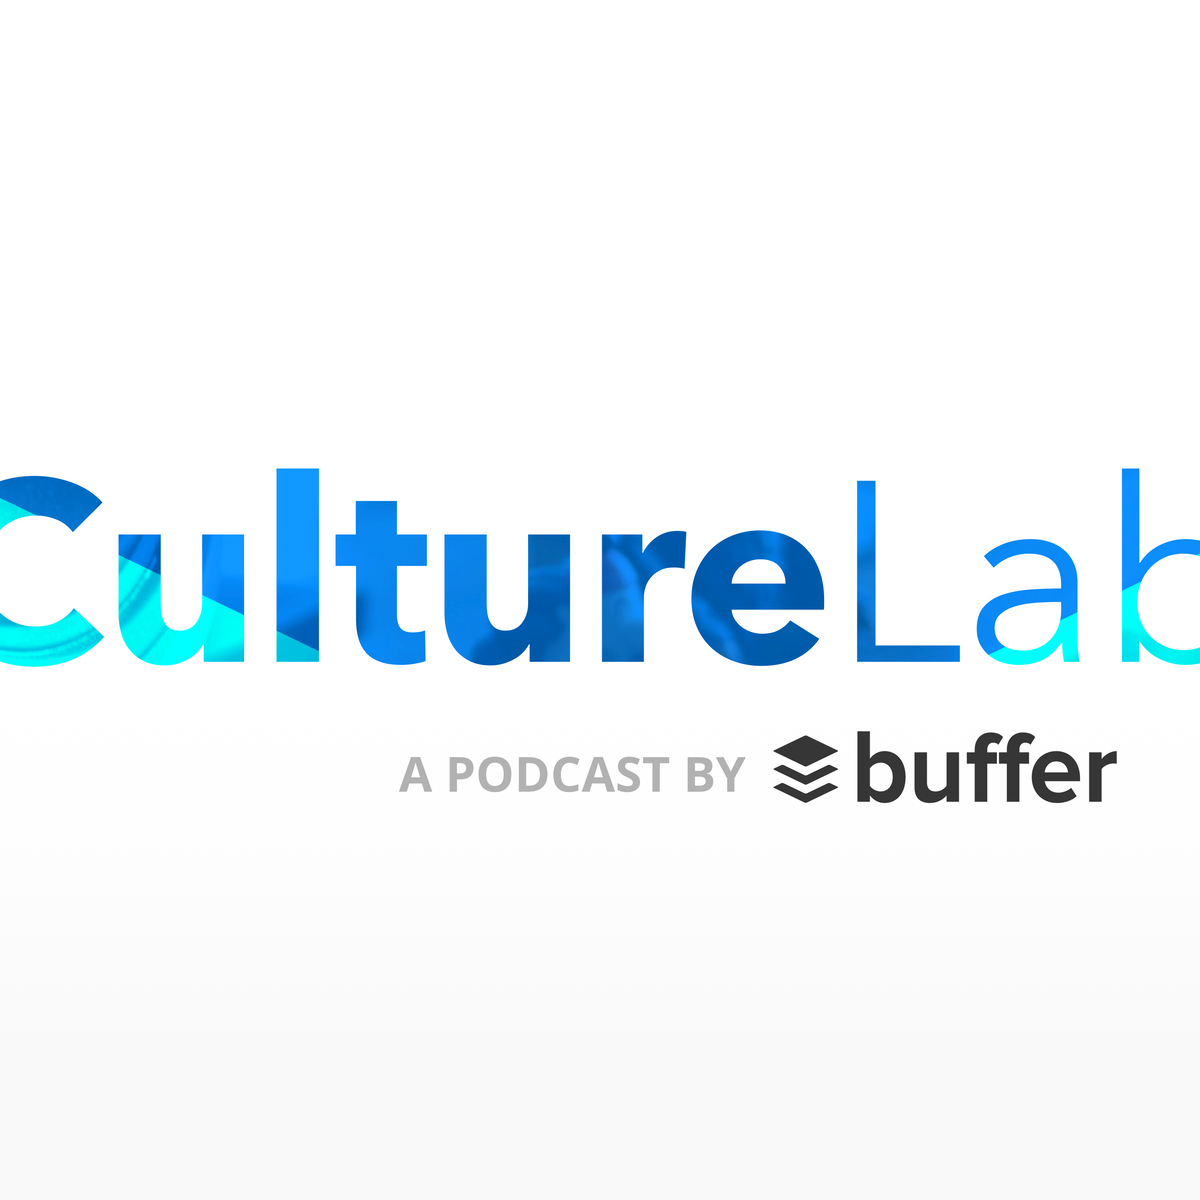 Introducing Our New Podcast: Buffer CultureLab